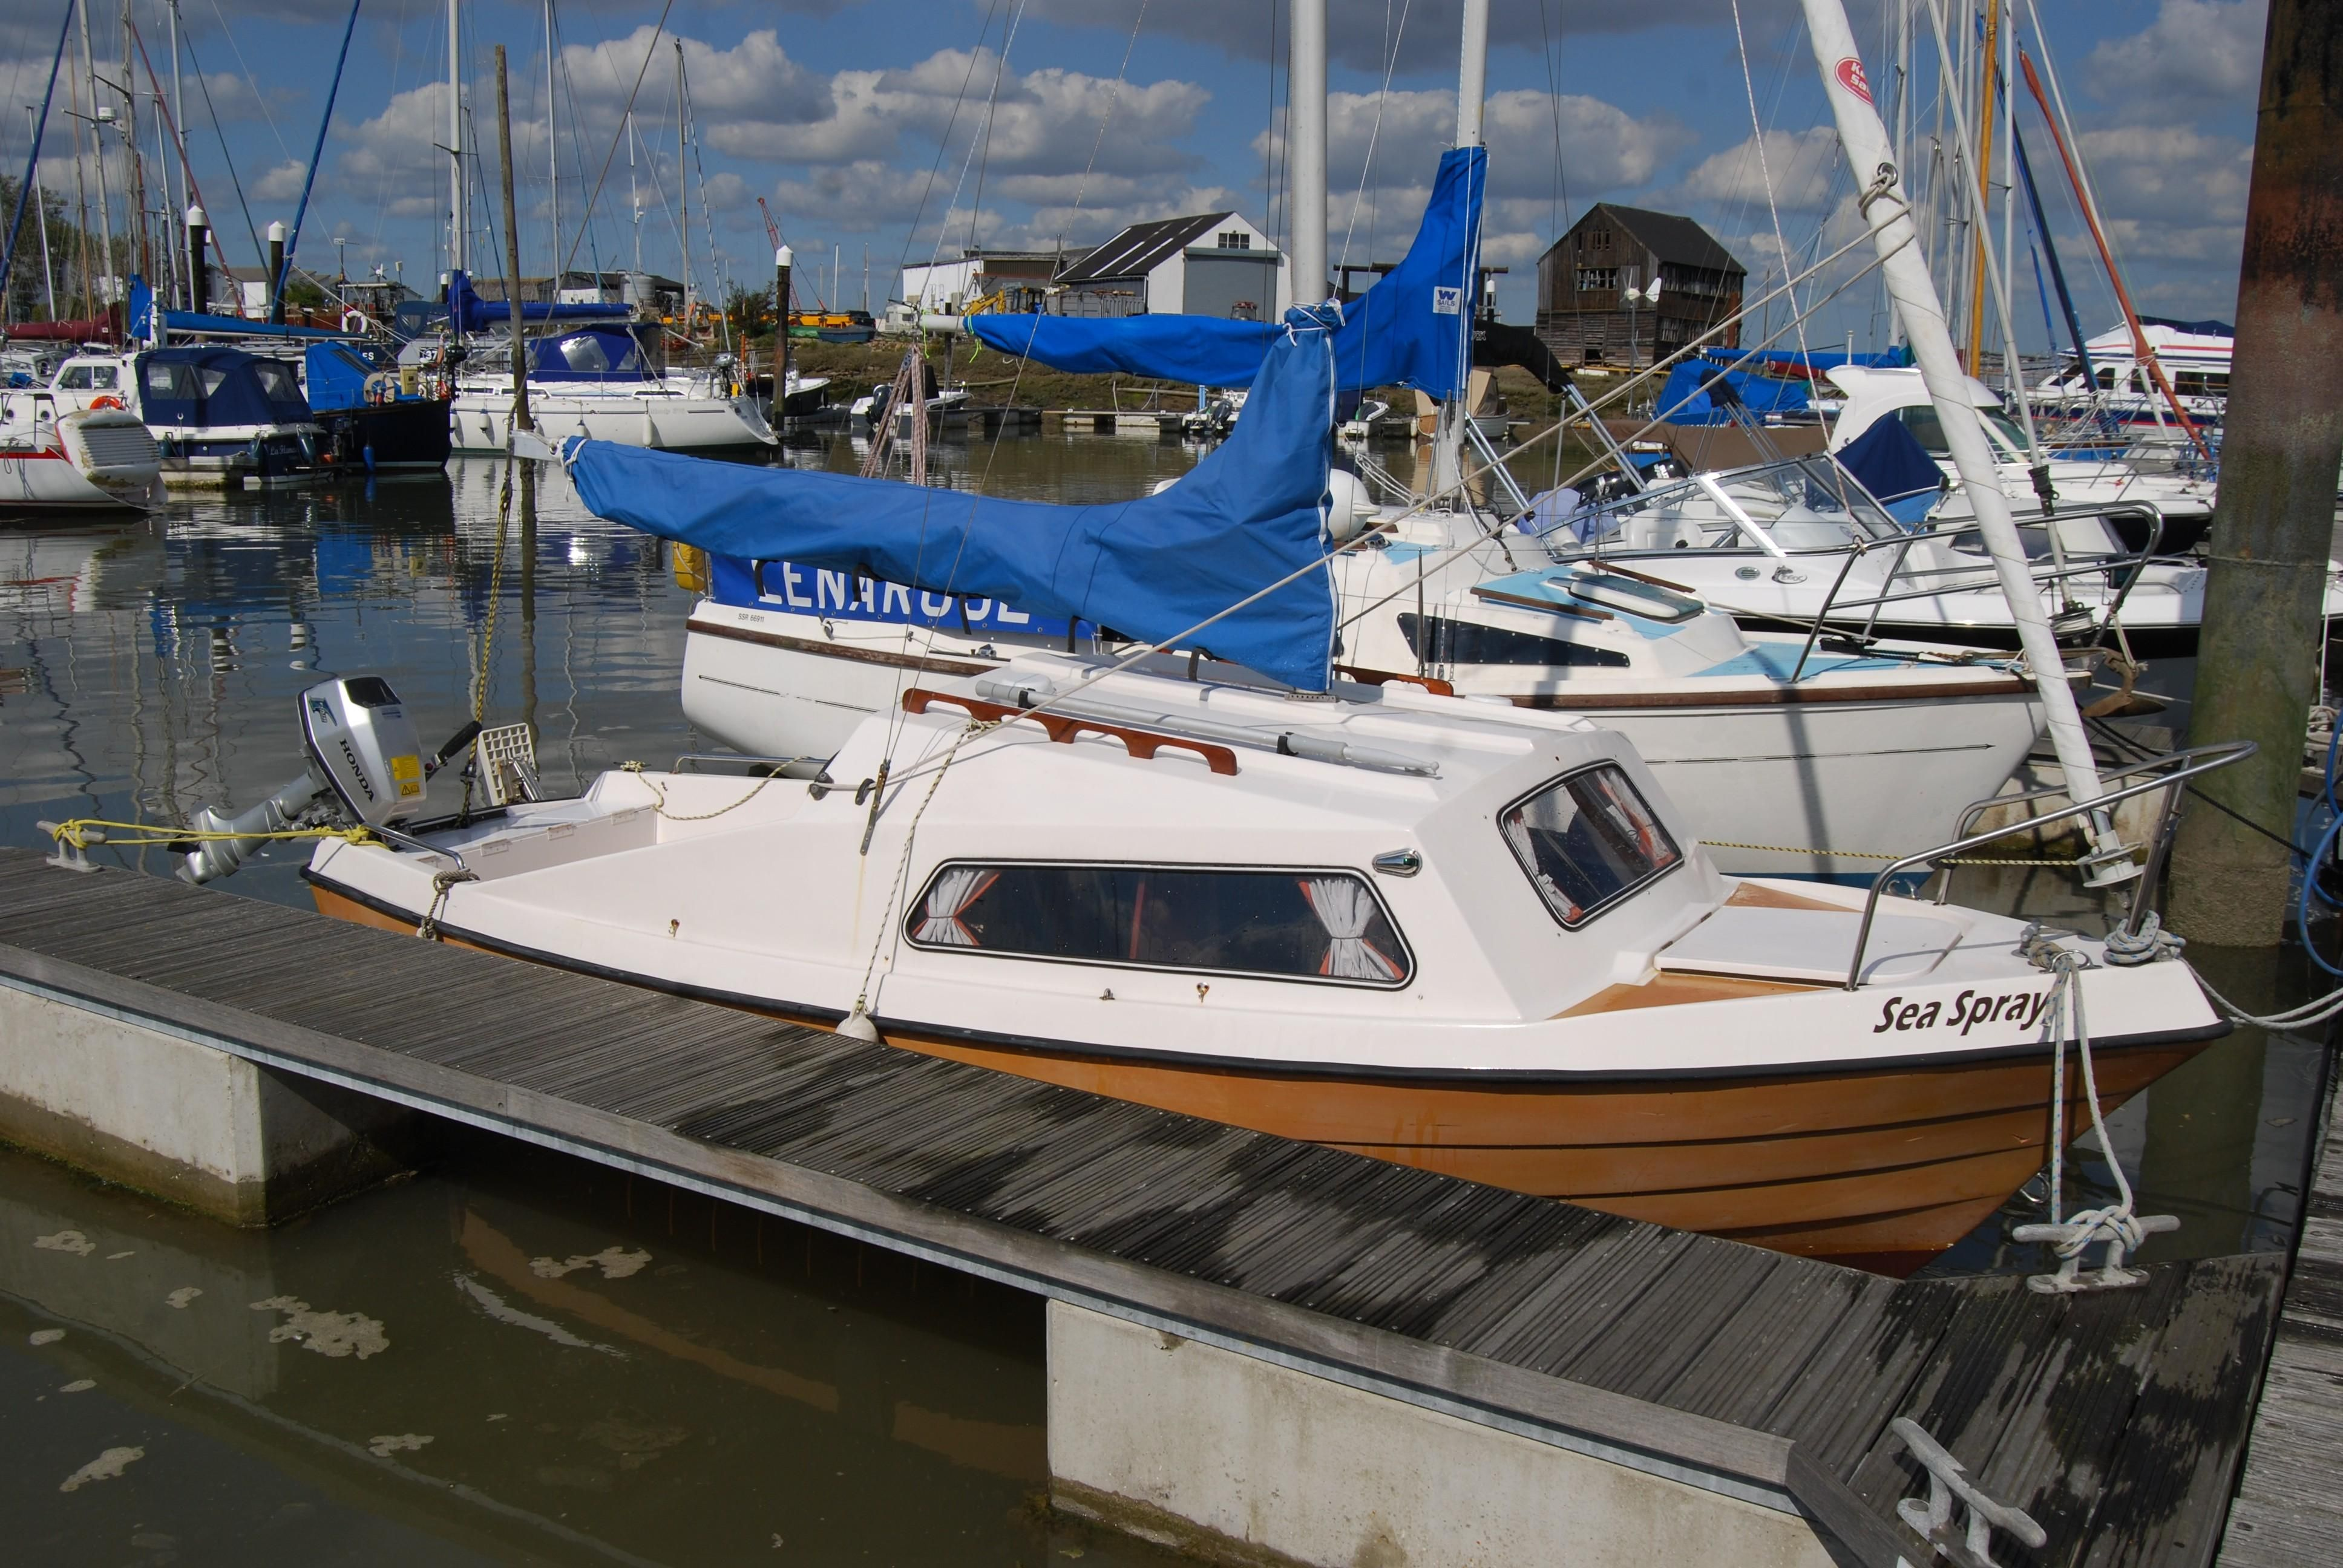 1975 Pedro 17 Sail New and Used Boats for Sale - www ...